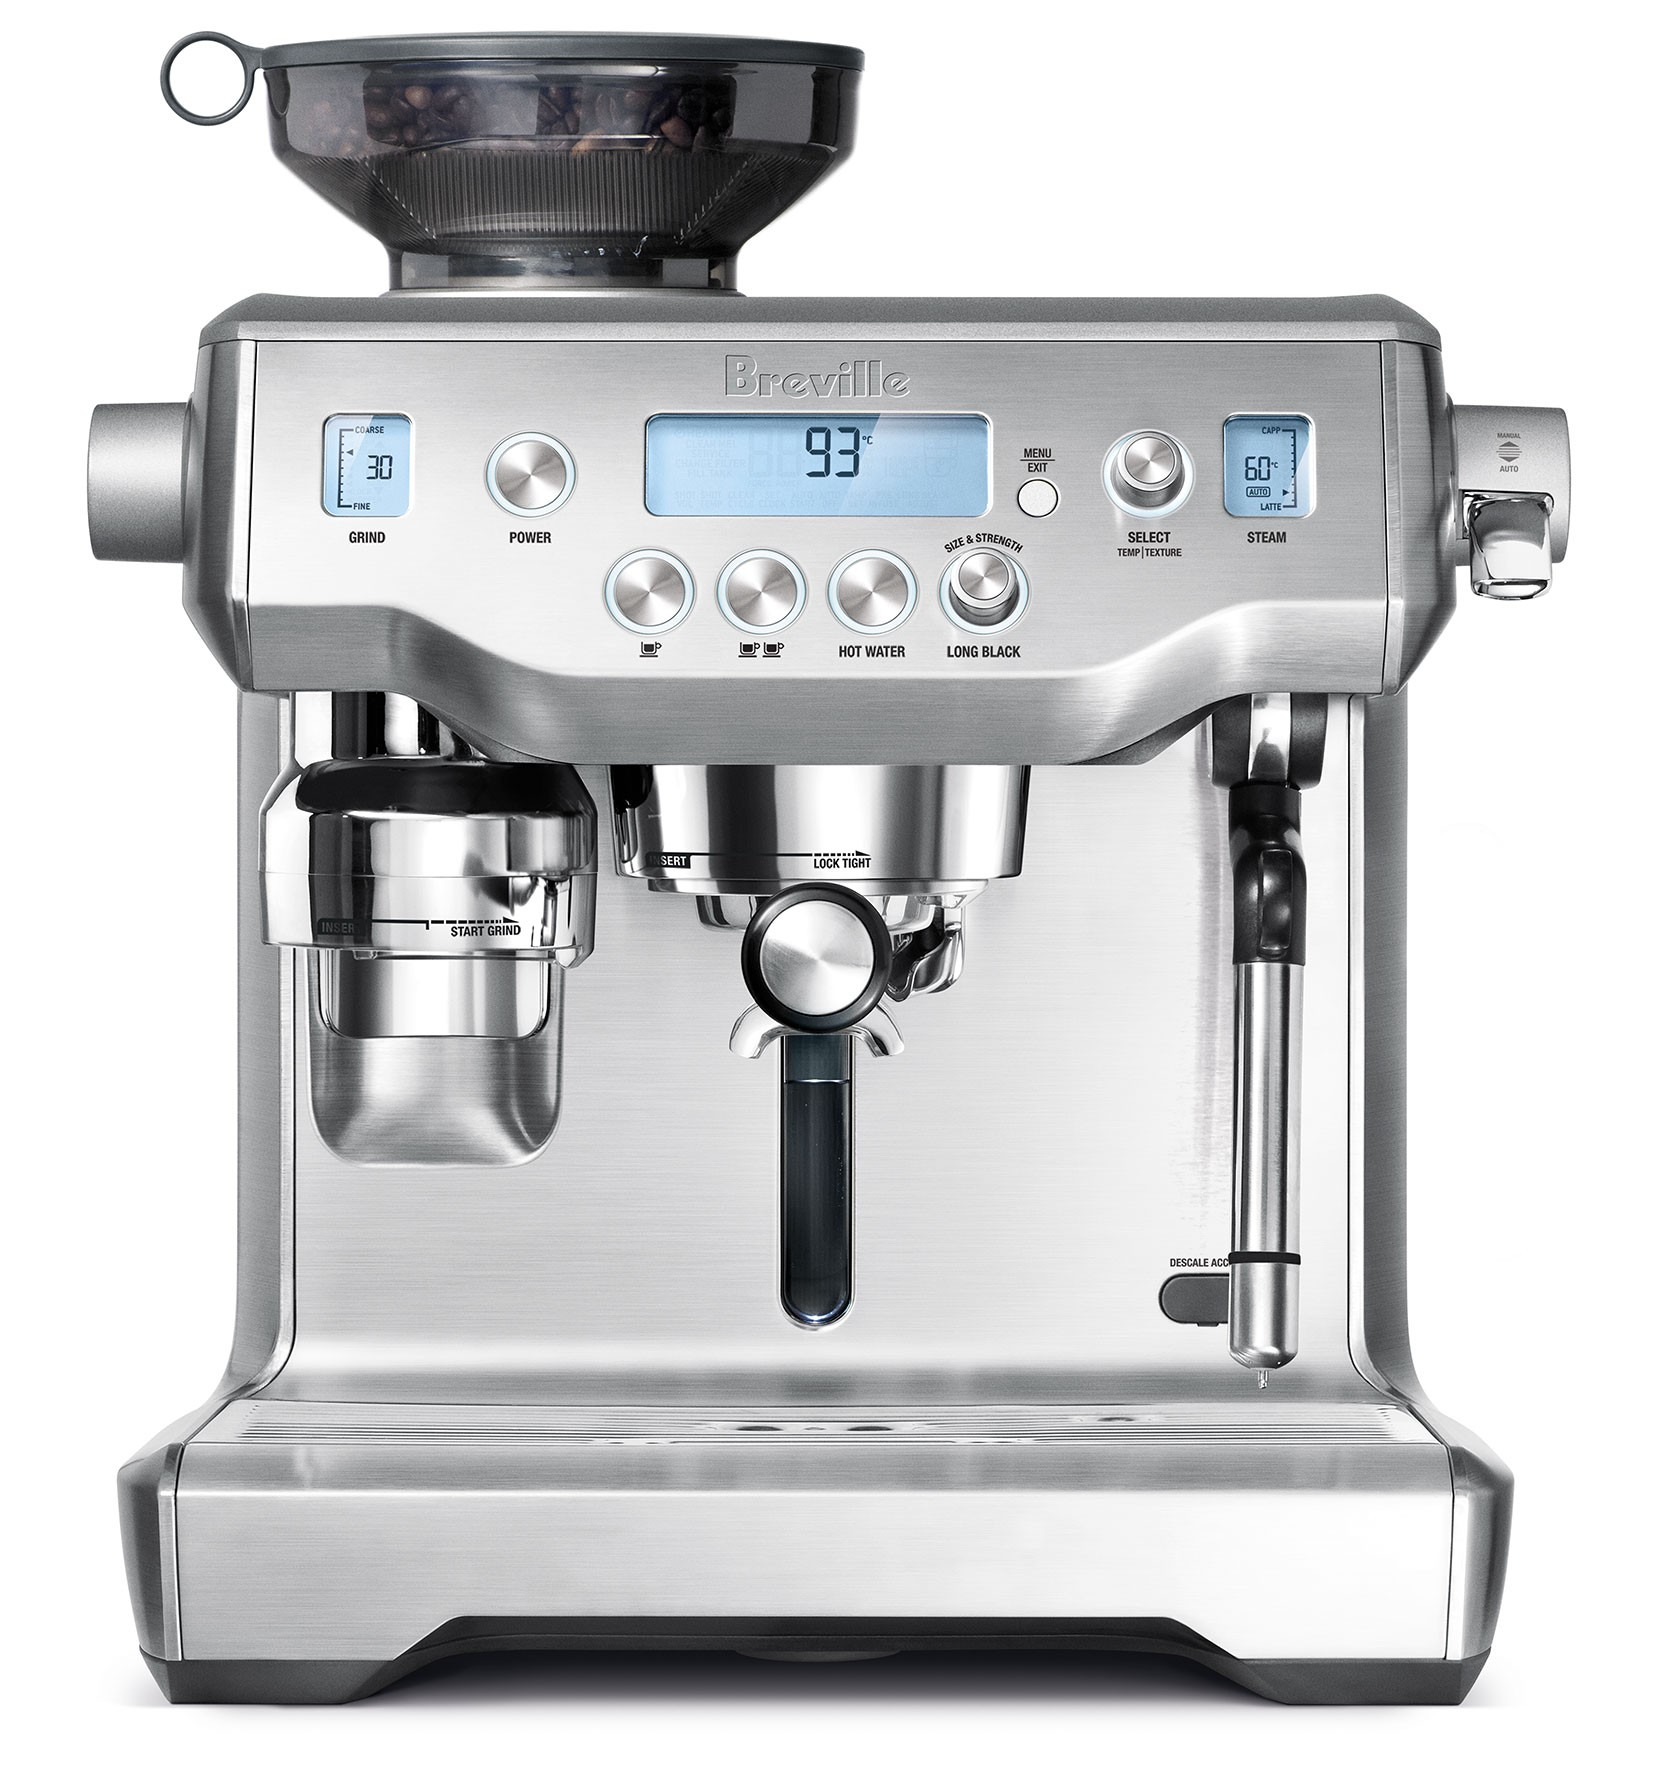 Breville Aroma Fresh Coffee Maker Instructions : Breville Oracle Espresso Machine BES980XL